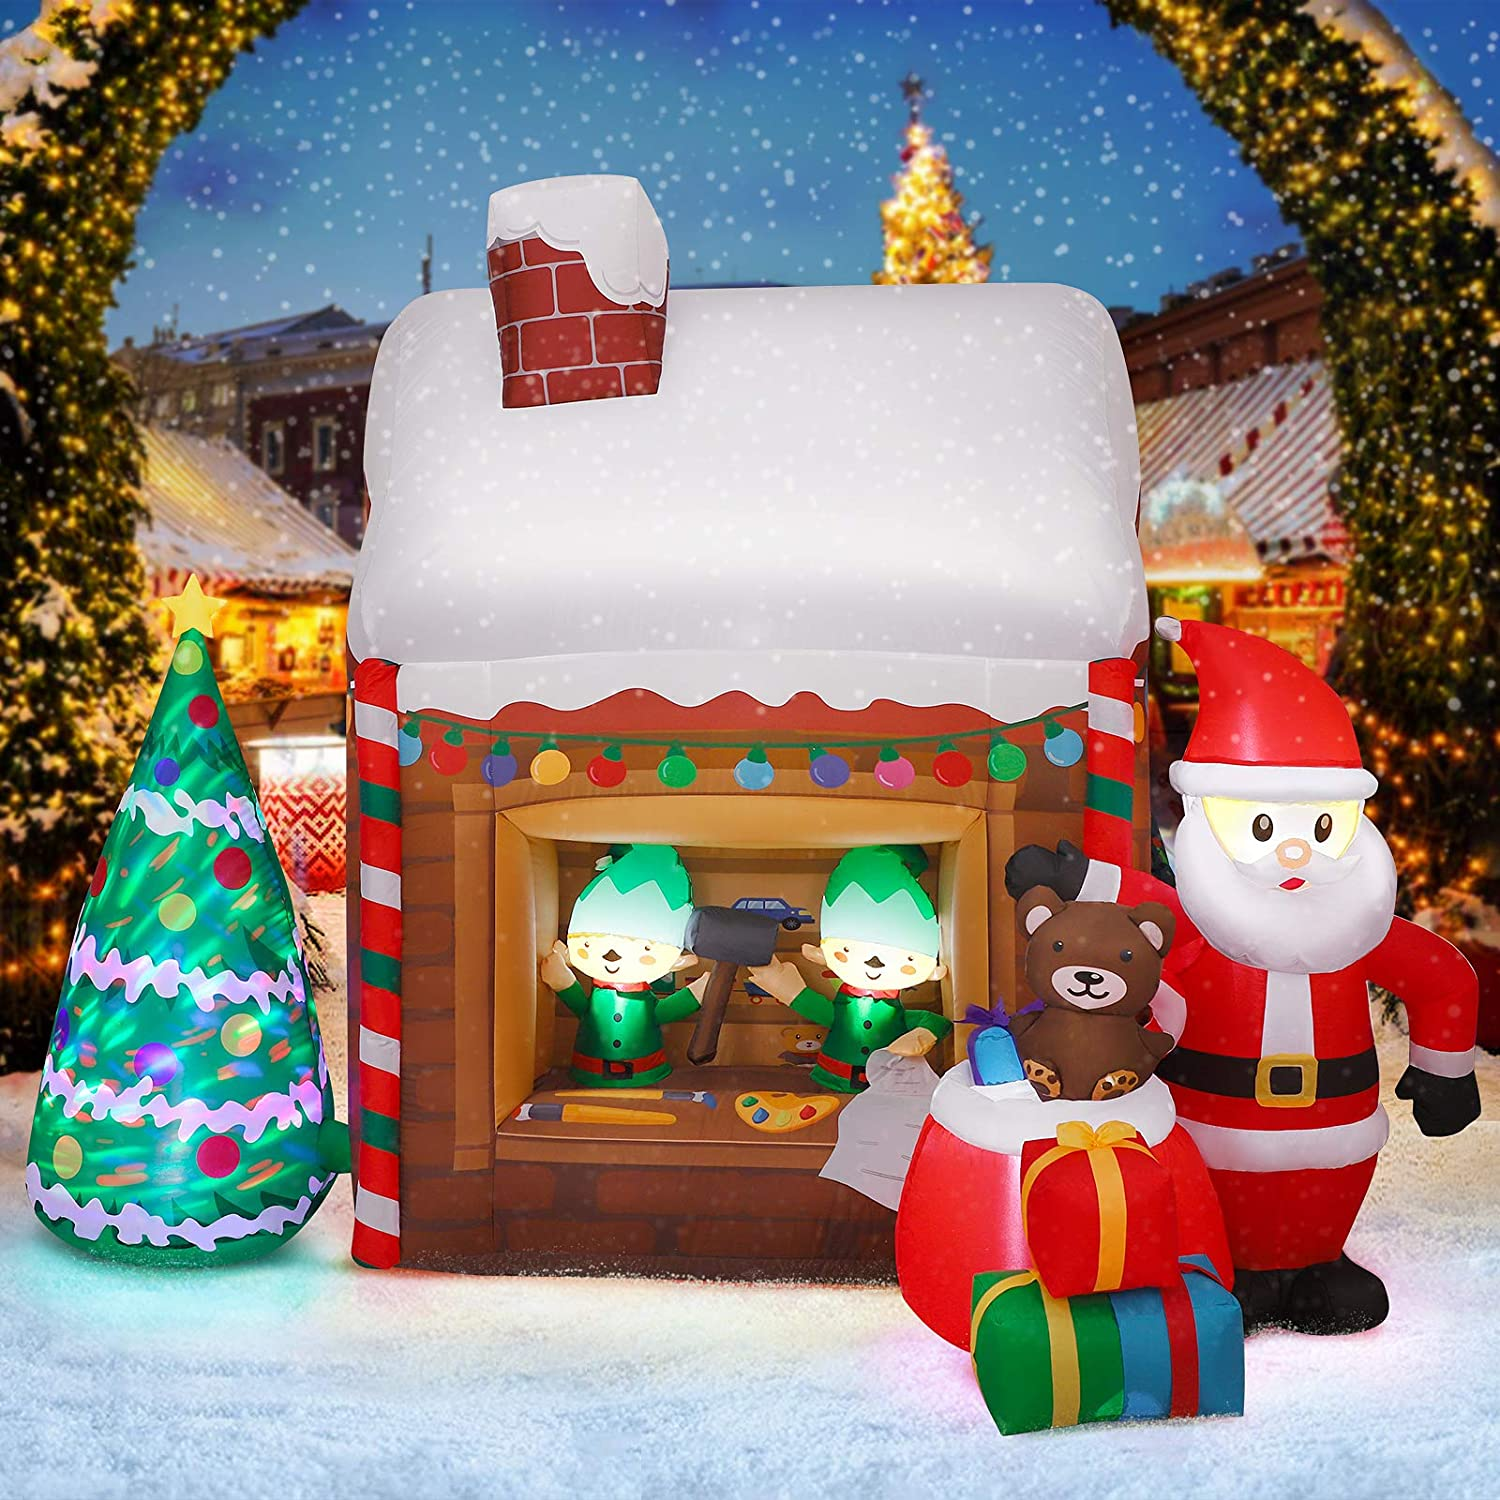 Christmas Yard Decoration, Inflatable LED Lighted Santa's Workshop Air Blown Up Decor for Yard Garden